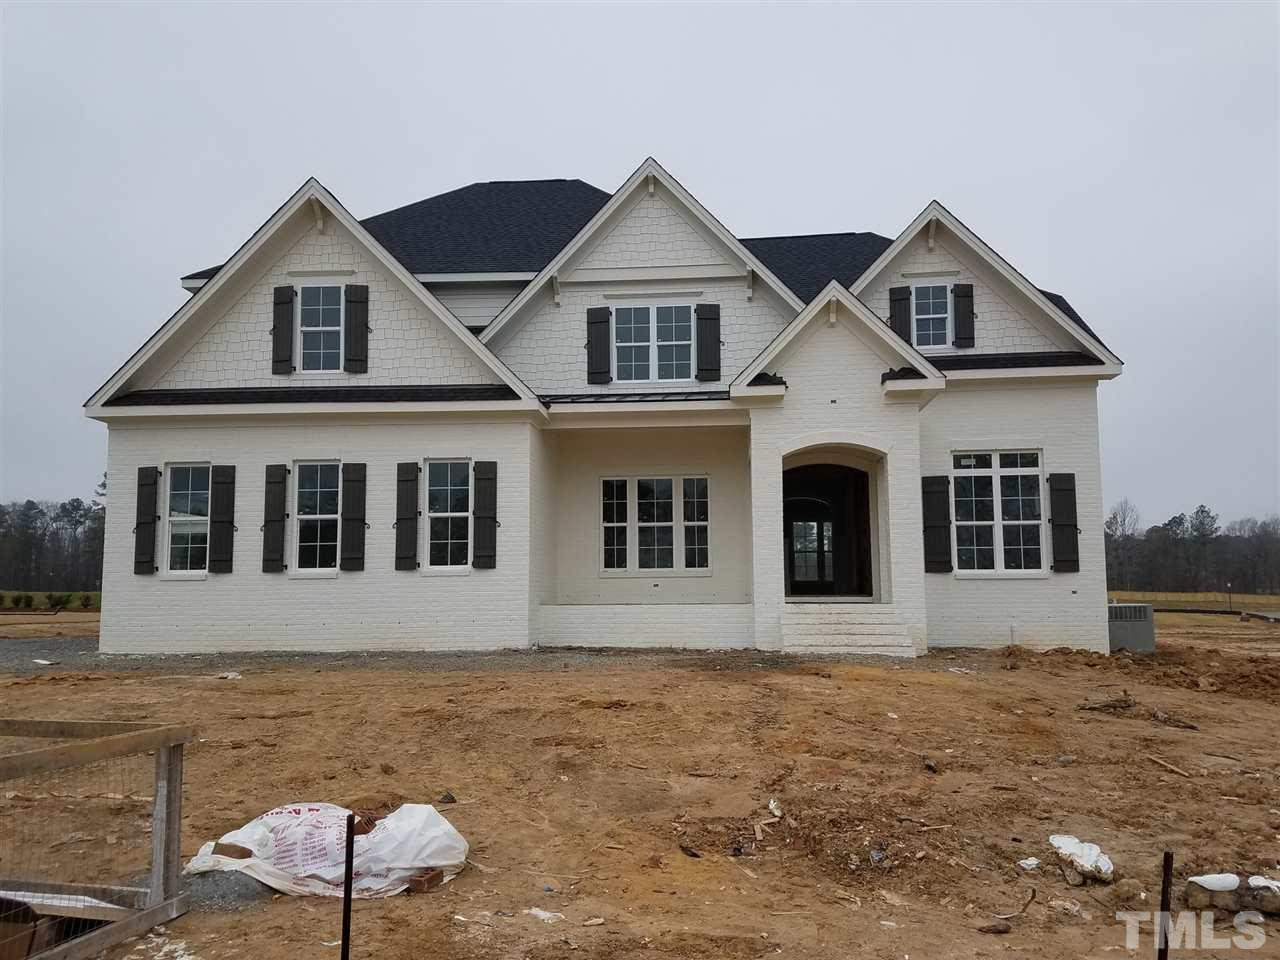 Beautiful custom built home by Future Homes by Jim Thompson.  Custom trim work throughout, custom closets.  Grand foyer opens into large family/kitchen/breakfast area.  Family room has coffered ceilings and built in shelves beside fireplace.  Large center island in gourmet kit with upgrade appliances.  Large walk in pantry.  Owner's suite is huge with tray ceilings and a closet to die for.  Closet has direct access to laundry.  4 other bedrooms each with a bathroom.  Large playroom and walk up attic.